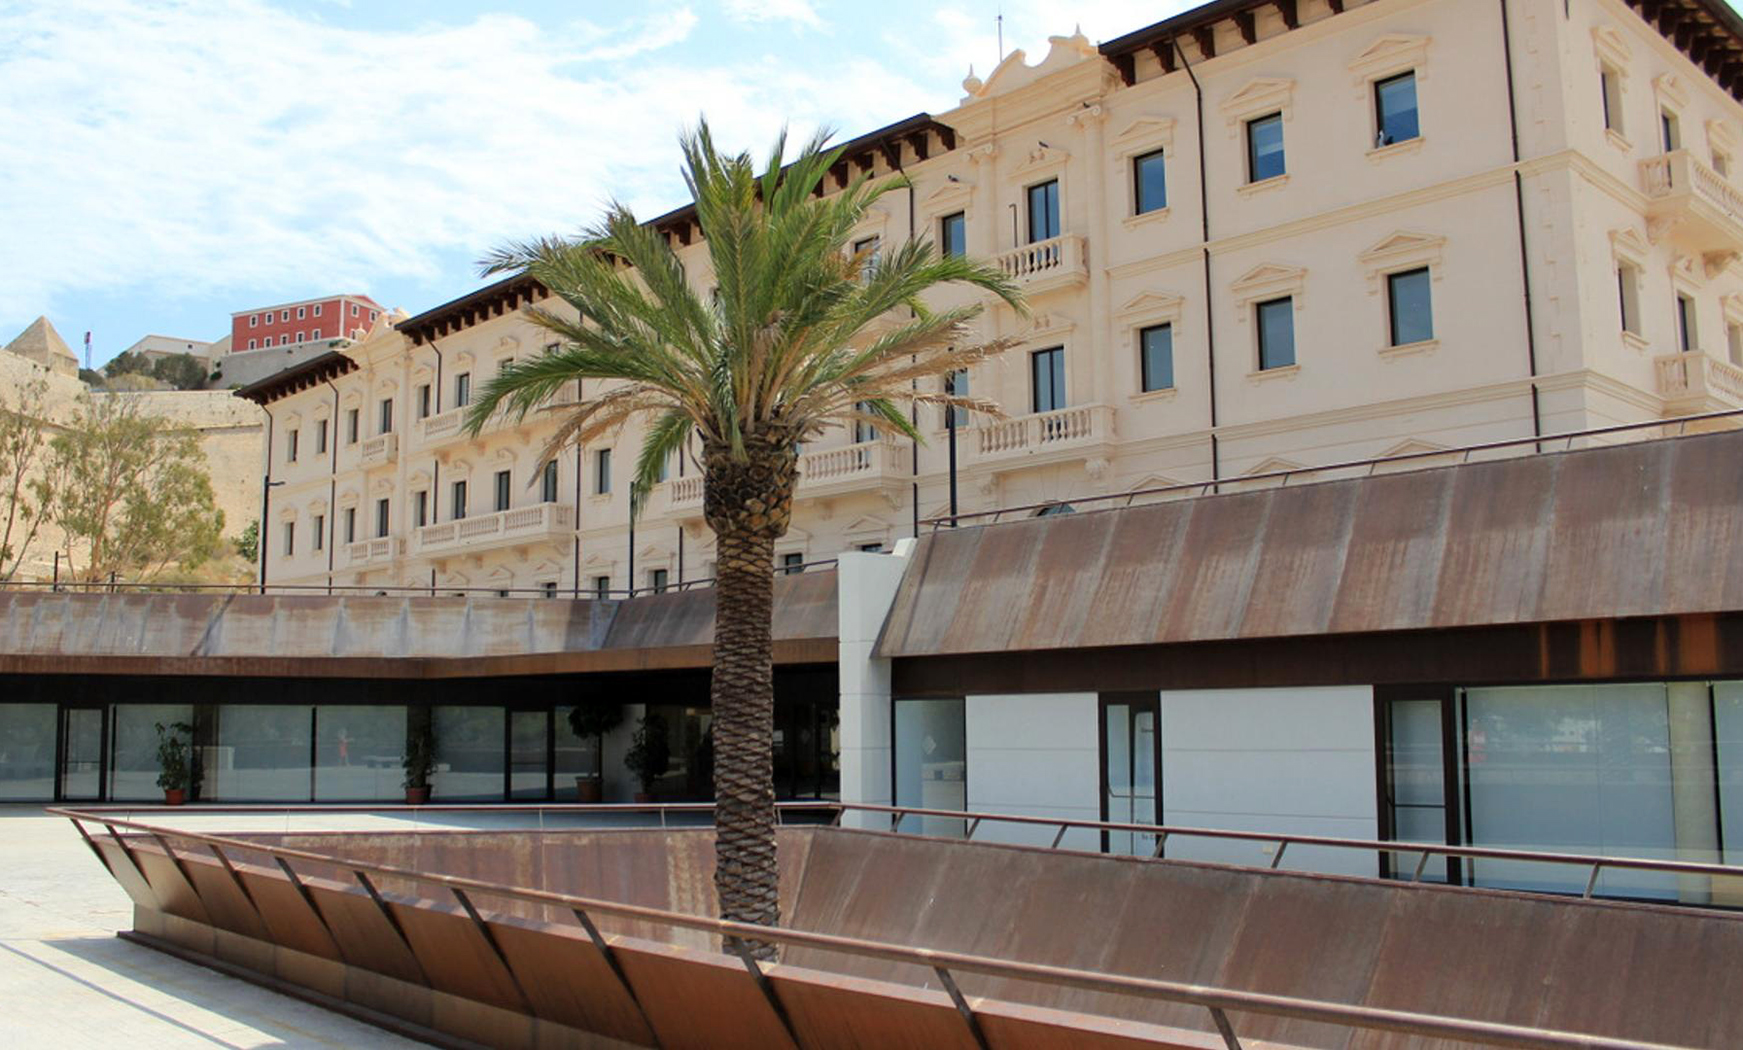 Off-campus Center of Eivissa and Formentera (UIB)